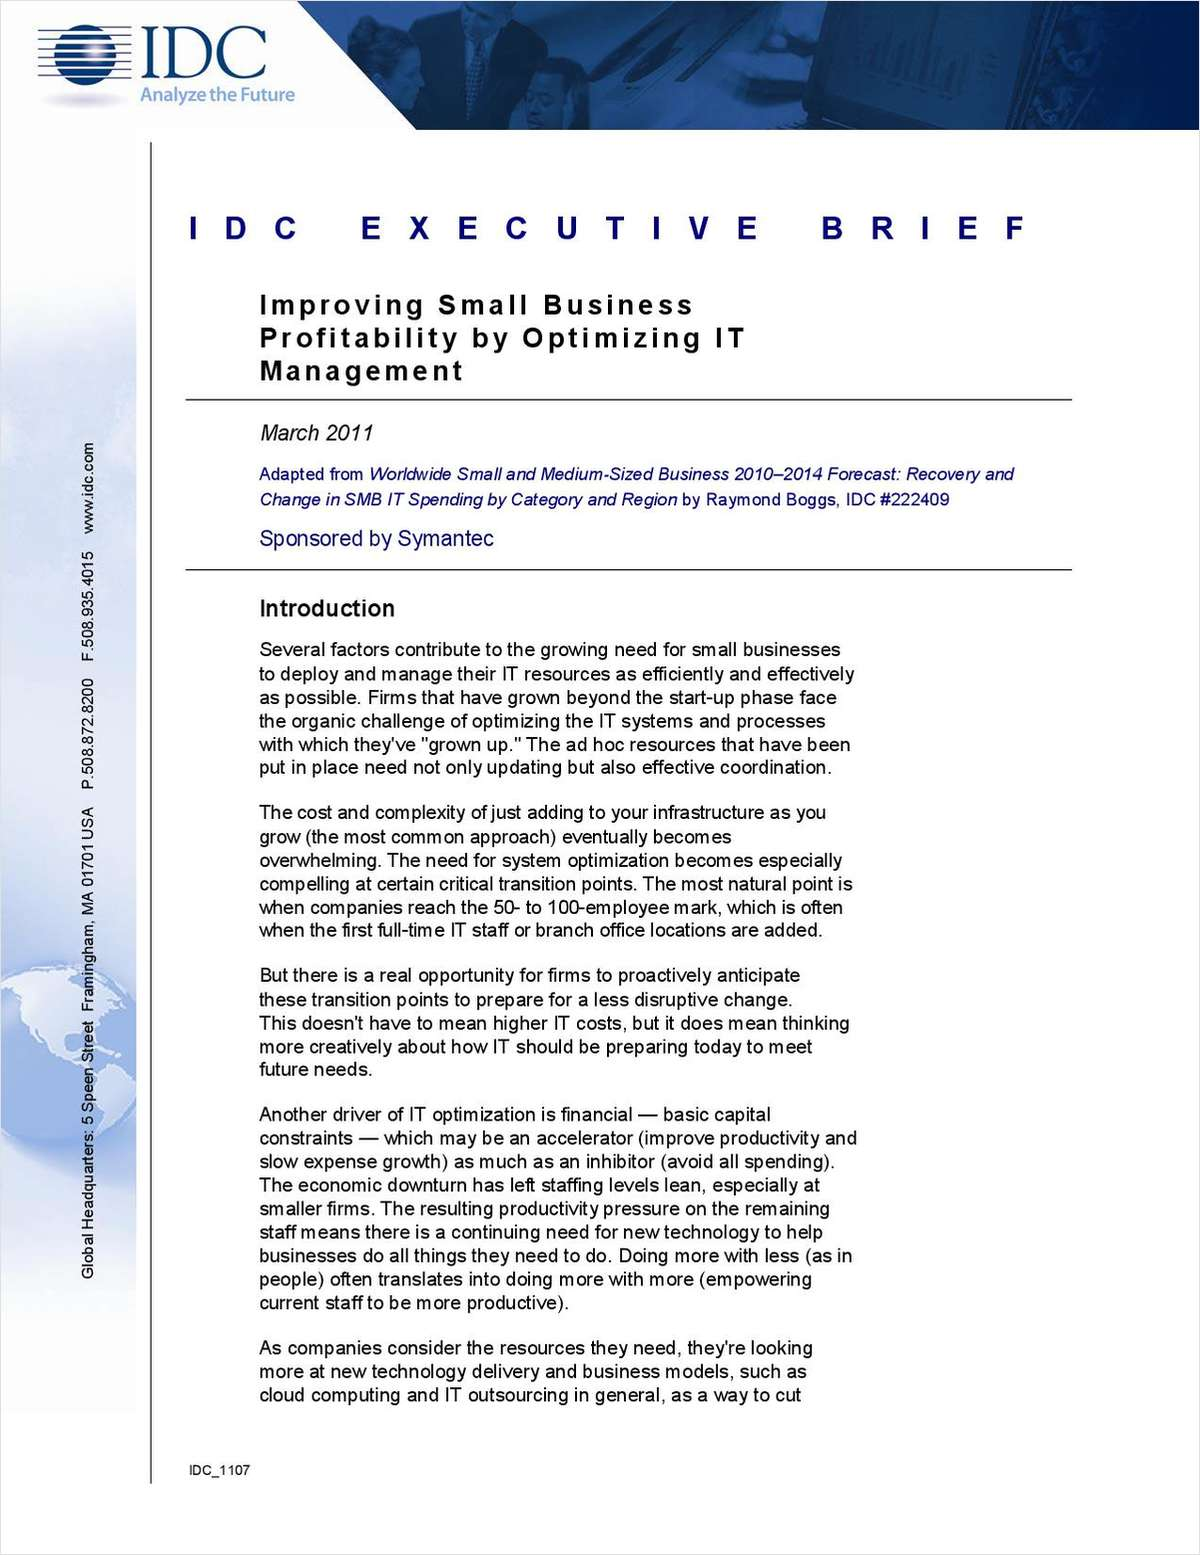 IDC Executive Brief: Improving Small Business Profitability by Optimizing IT Management